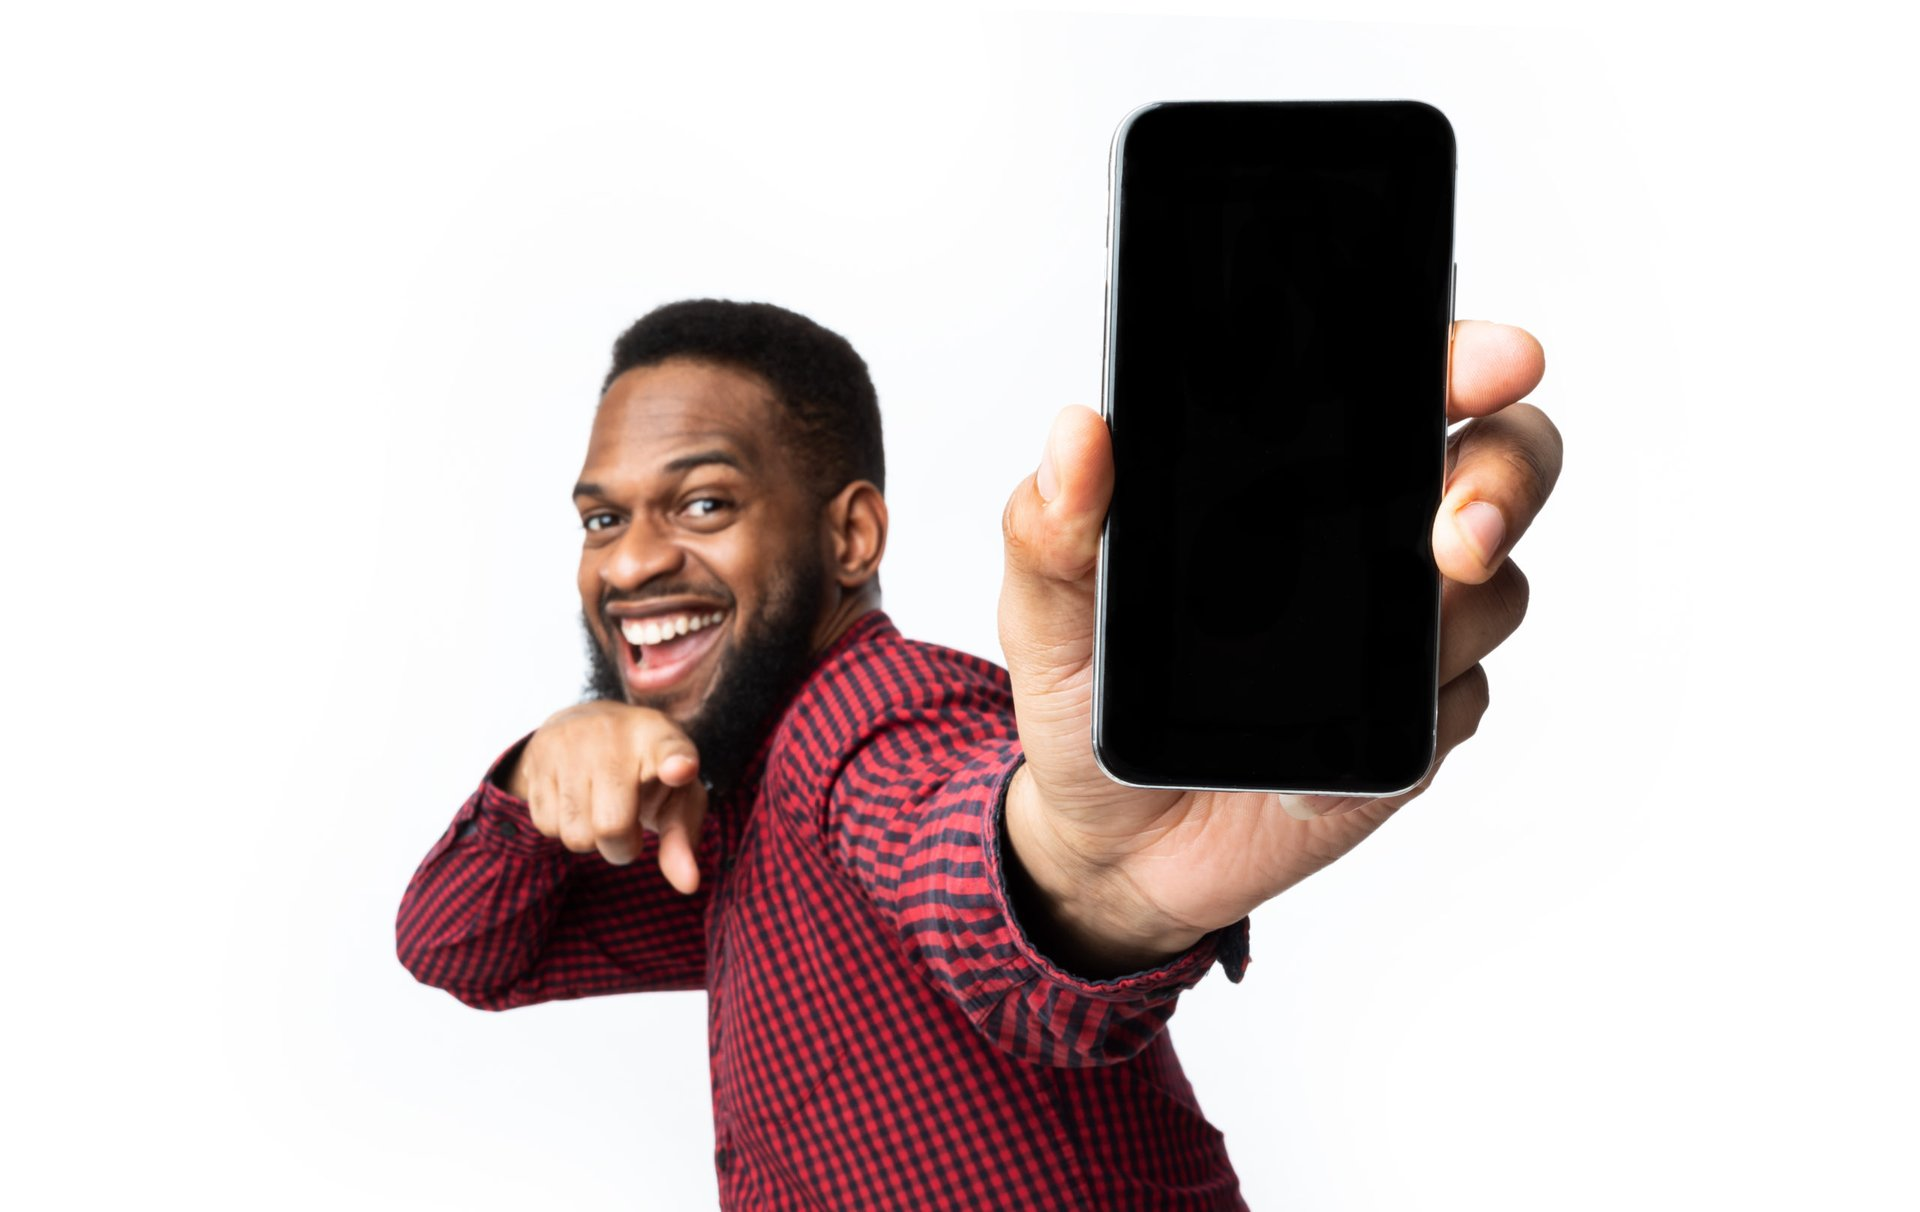 Happy man with cellphone